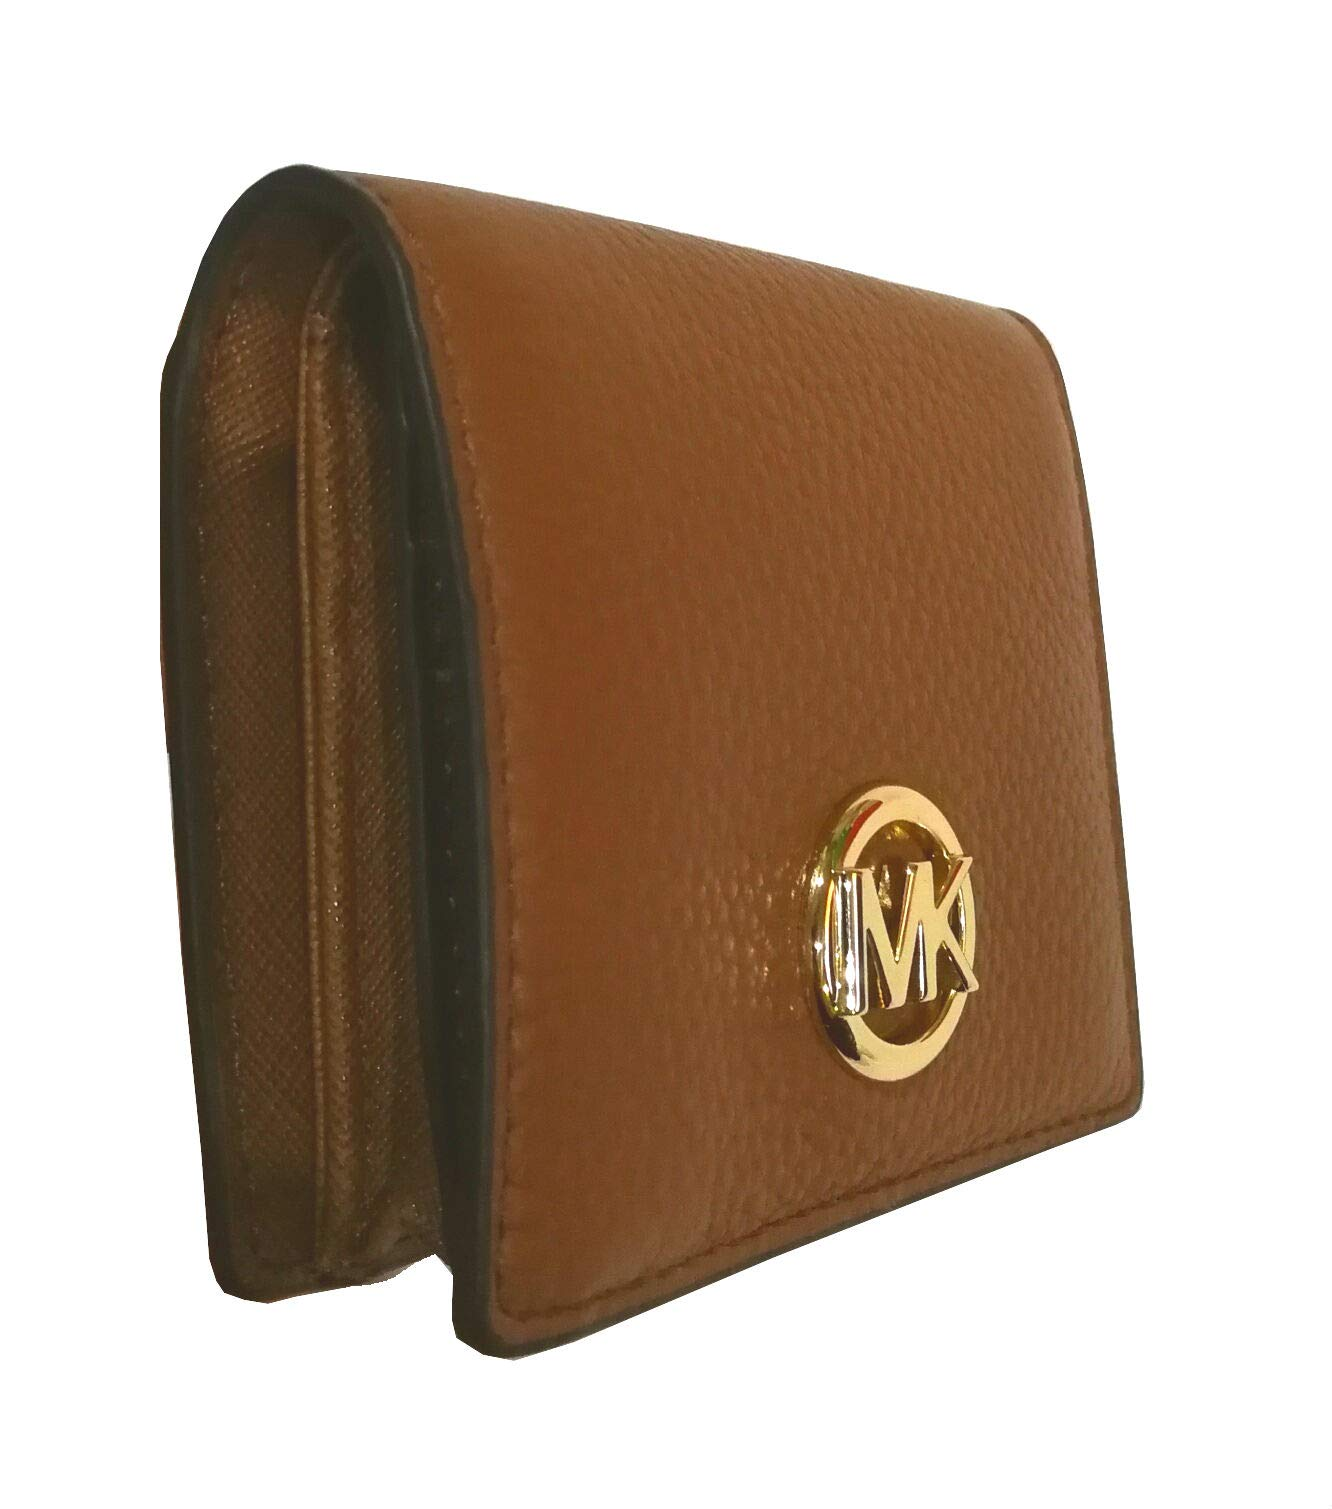 Michael Kors Fulton Leather Carryall Card Case Wallet (Luggage) by Michael Kors (Image #3)